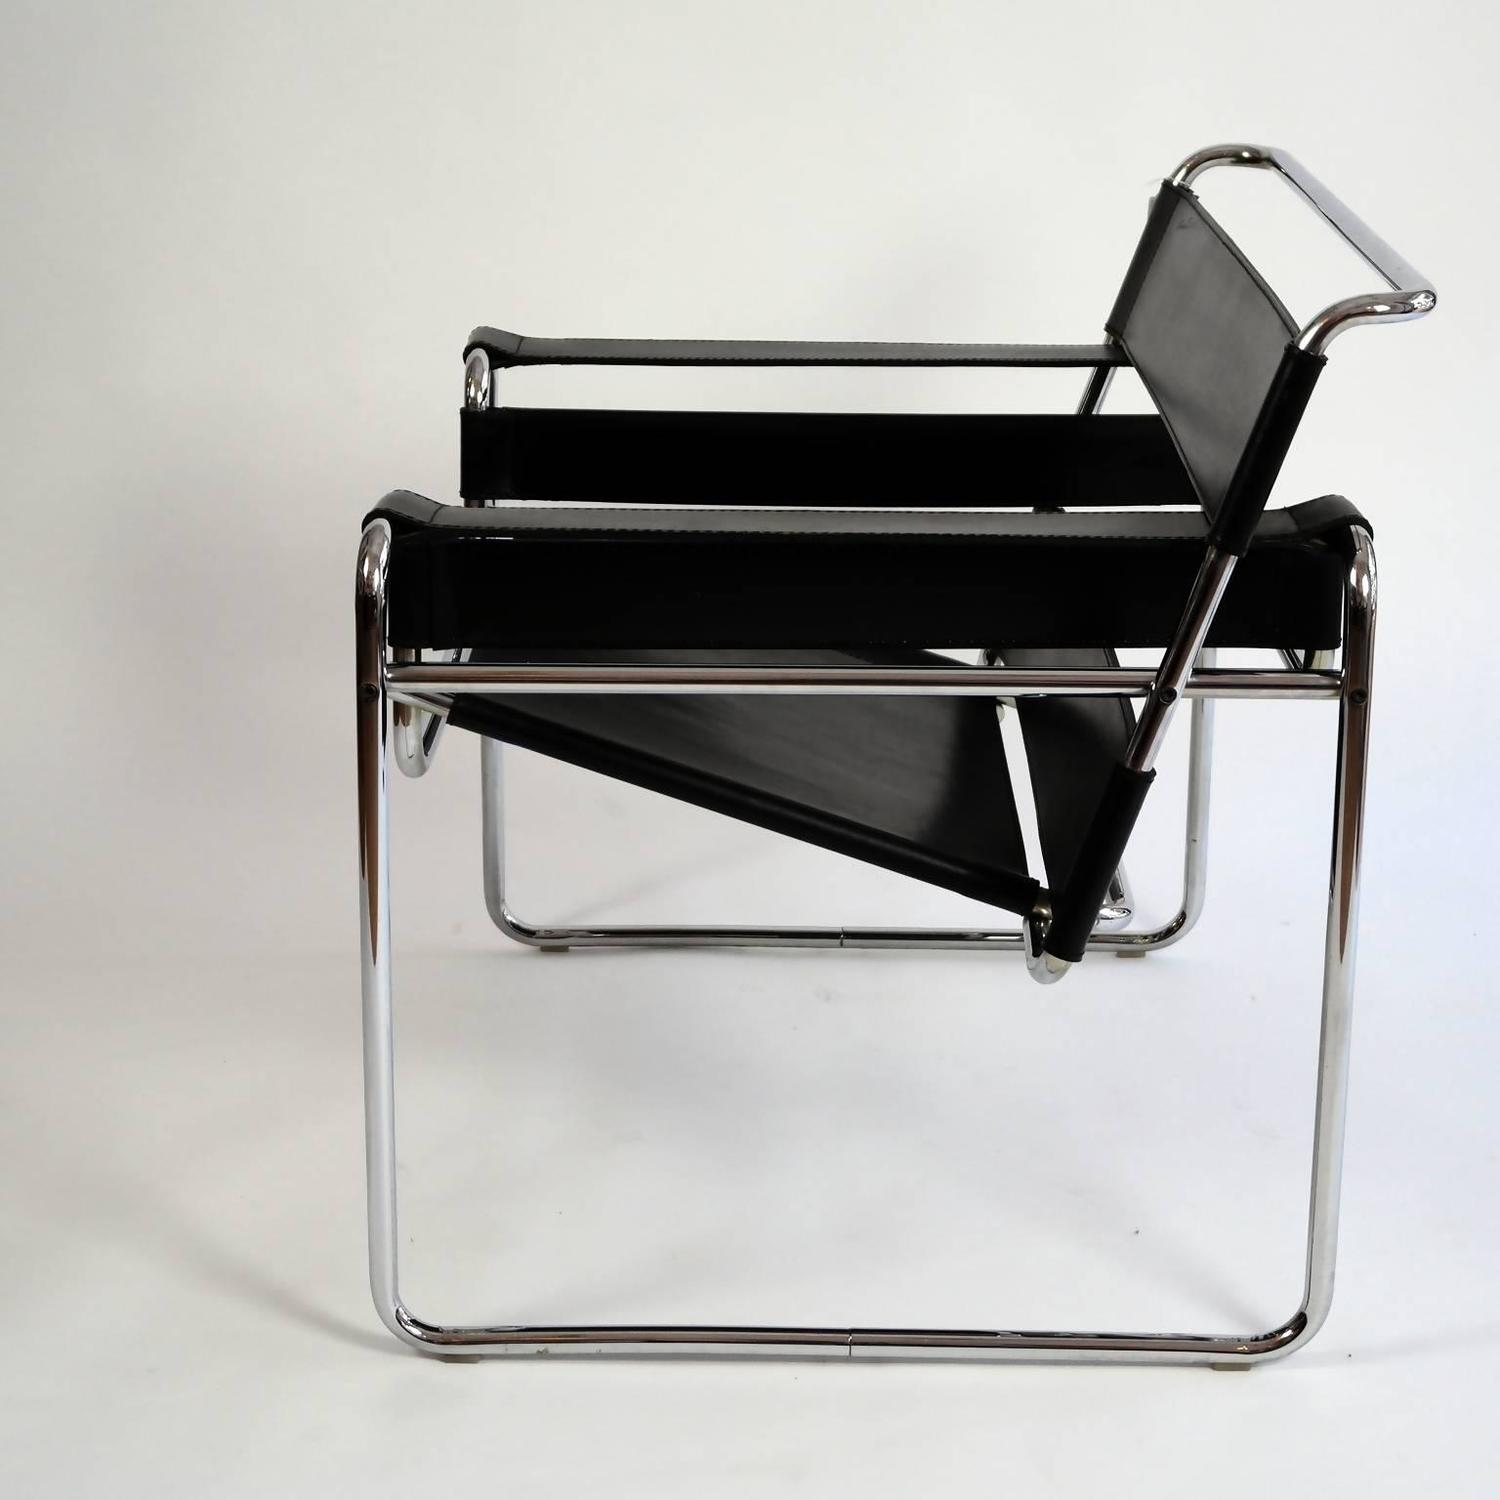 marcel breuer chair original little tikes table and chairs set bauhaus wassily lounge by for